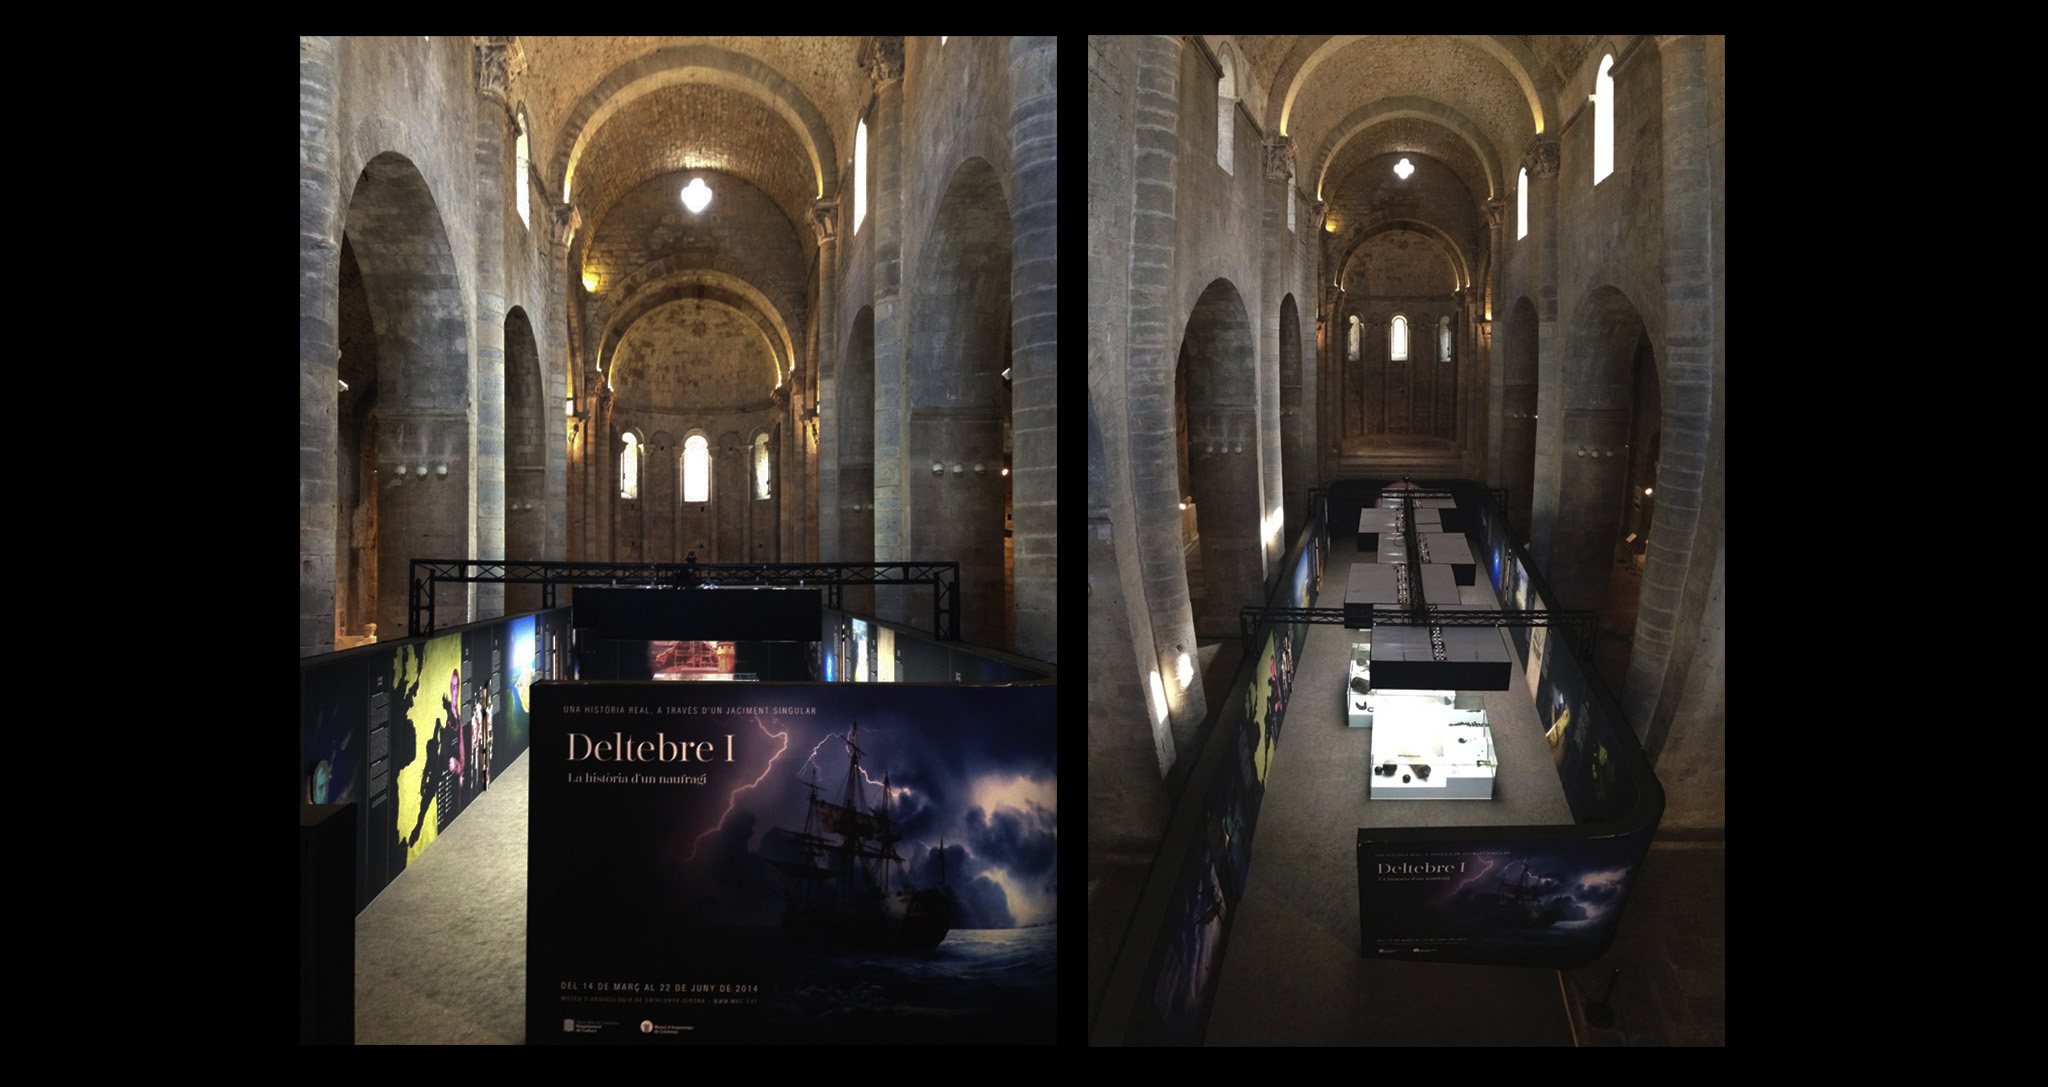 DESIGN EXHIBITION AND MUSEOGRAPHY TEMPORARY TRAVELING DELTEBRE SHIPWRECK IN MAC ARCHEOLOGY OF CATALONIA BY ROCAMORA ARCHITECTURE ELCHE ALICANTE SPAIN